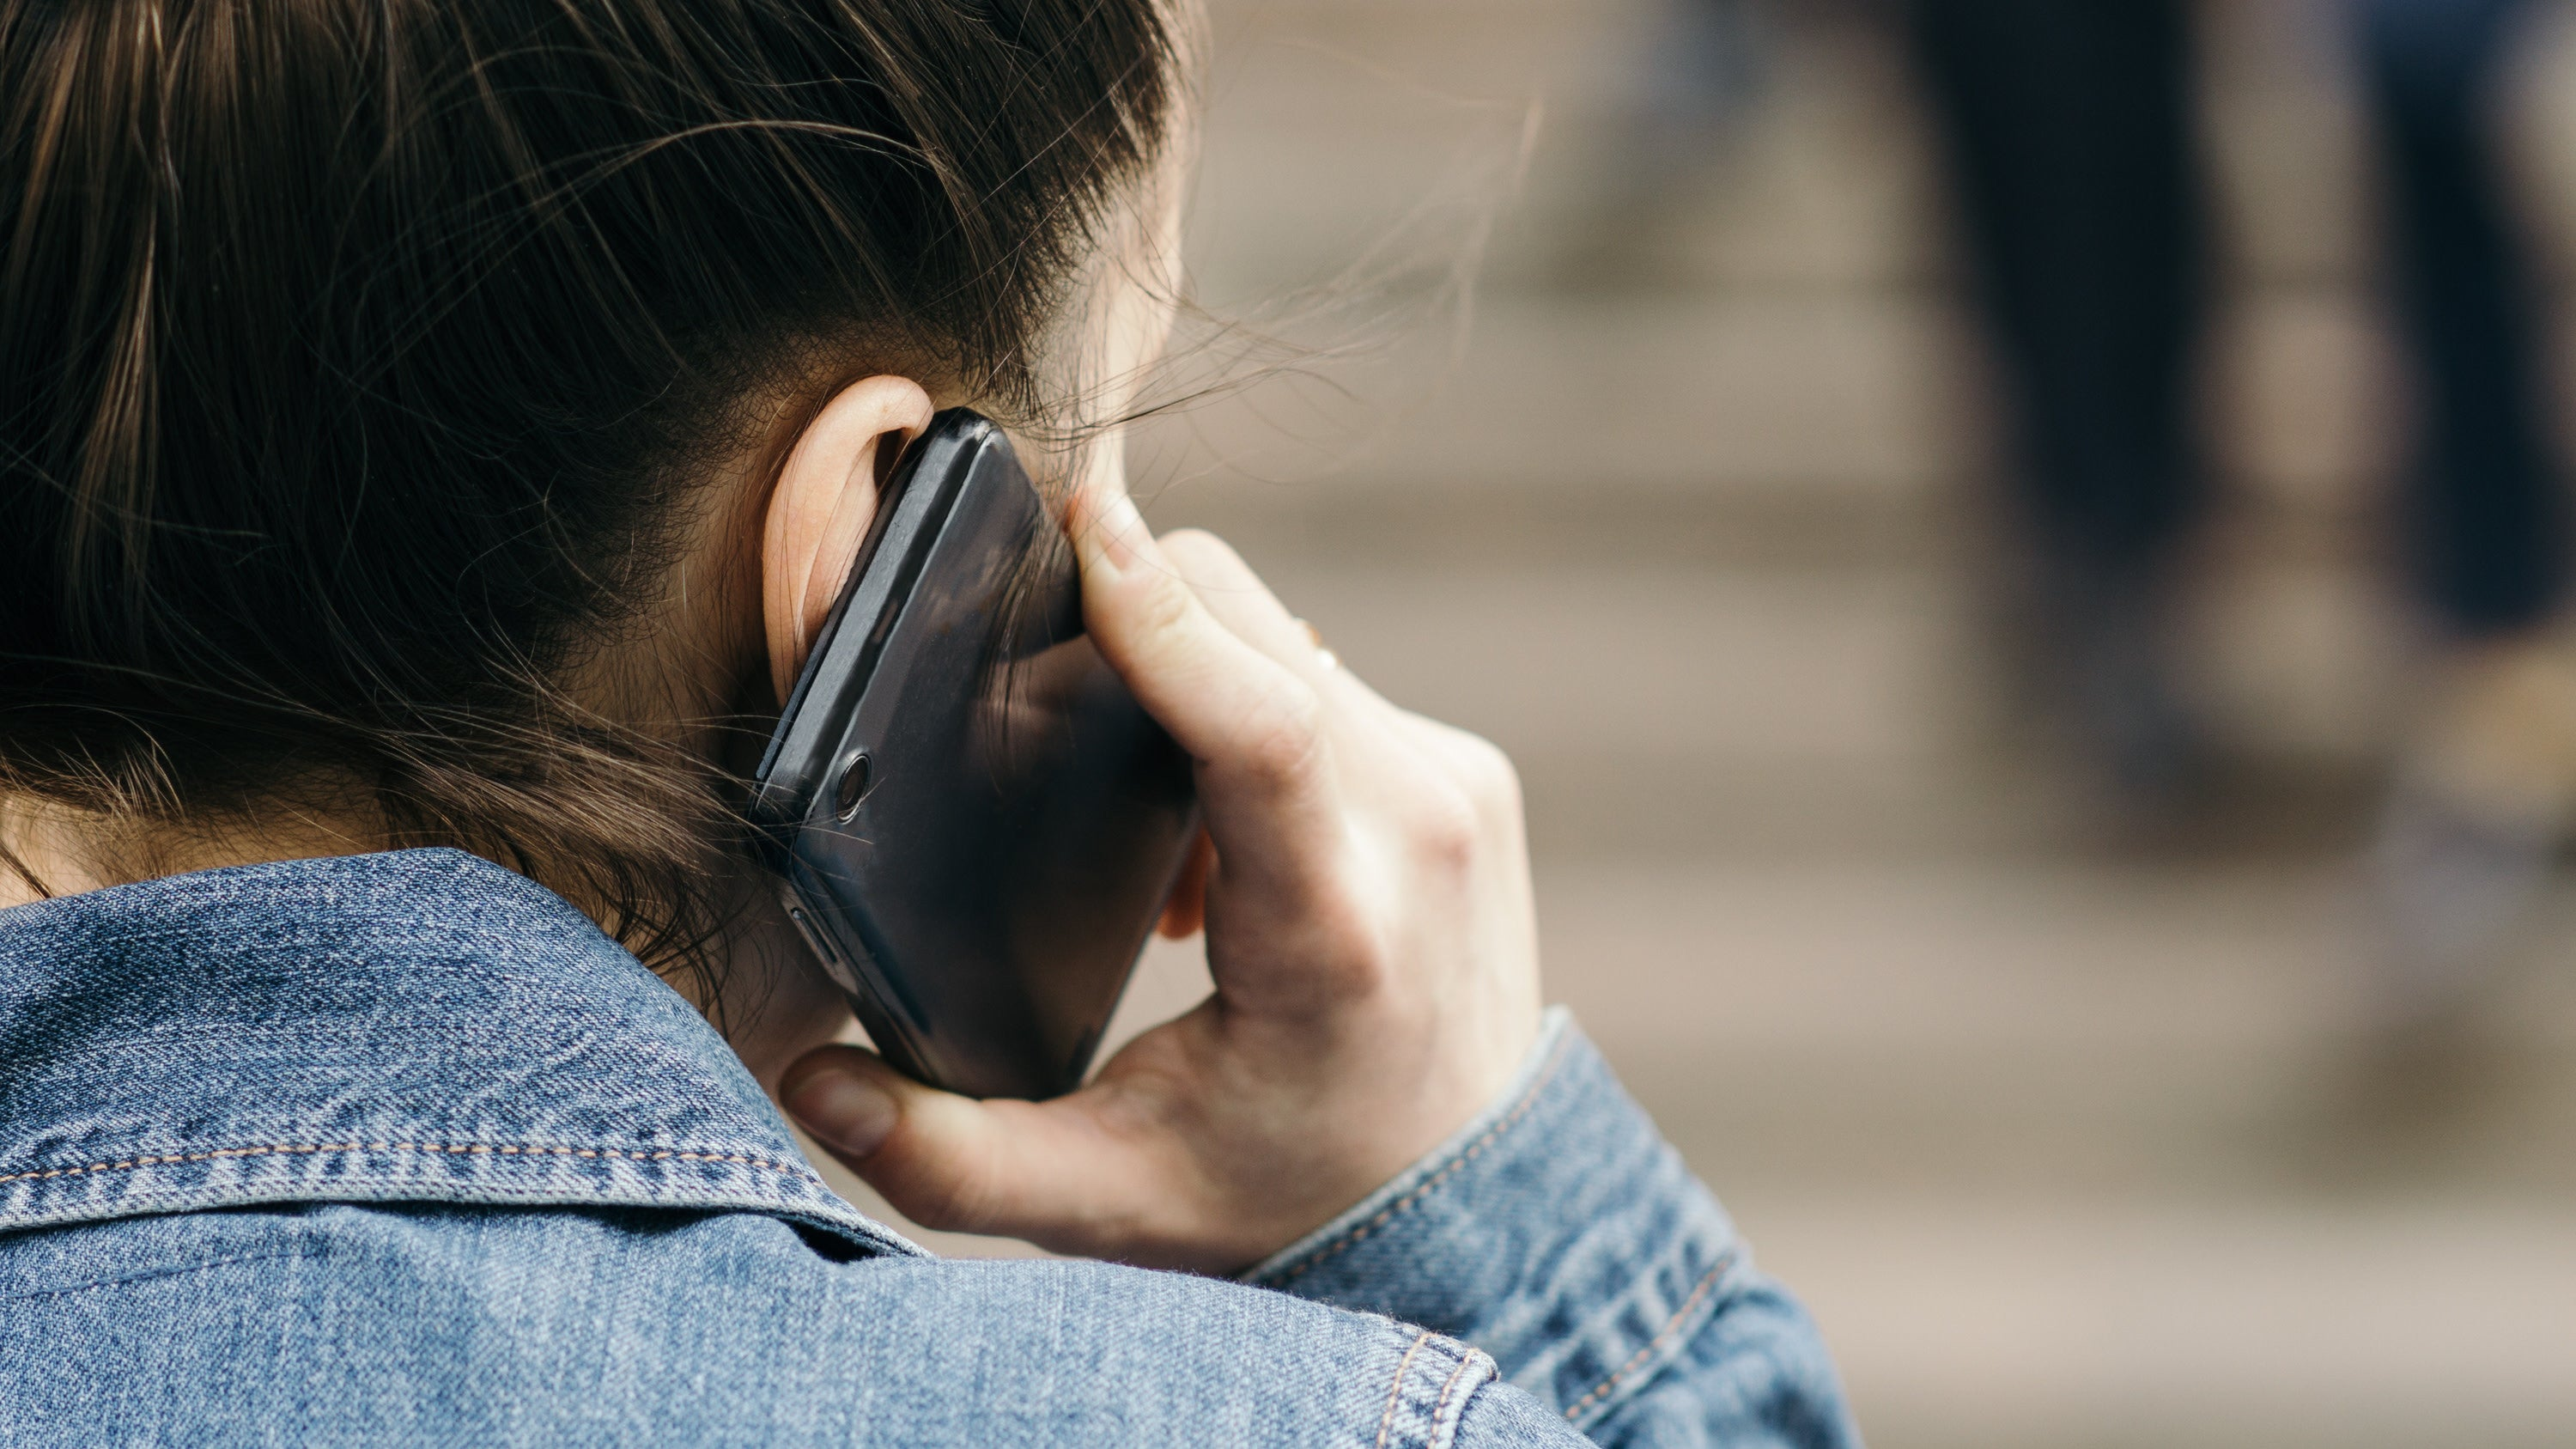 Beware A New Scam That Asks For Your Bank PIN On The Phone